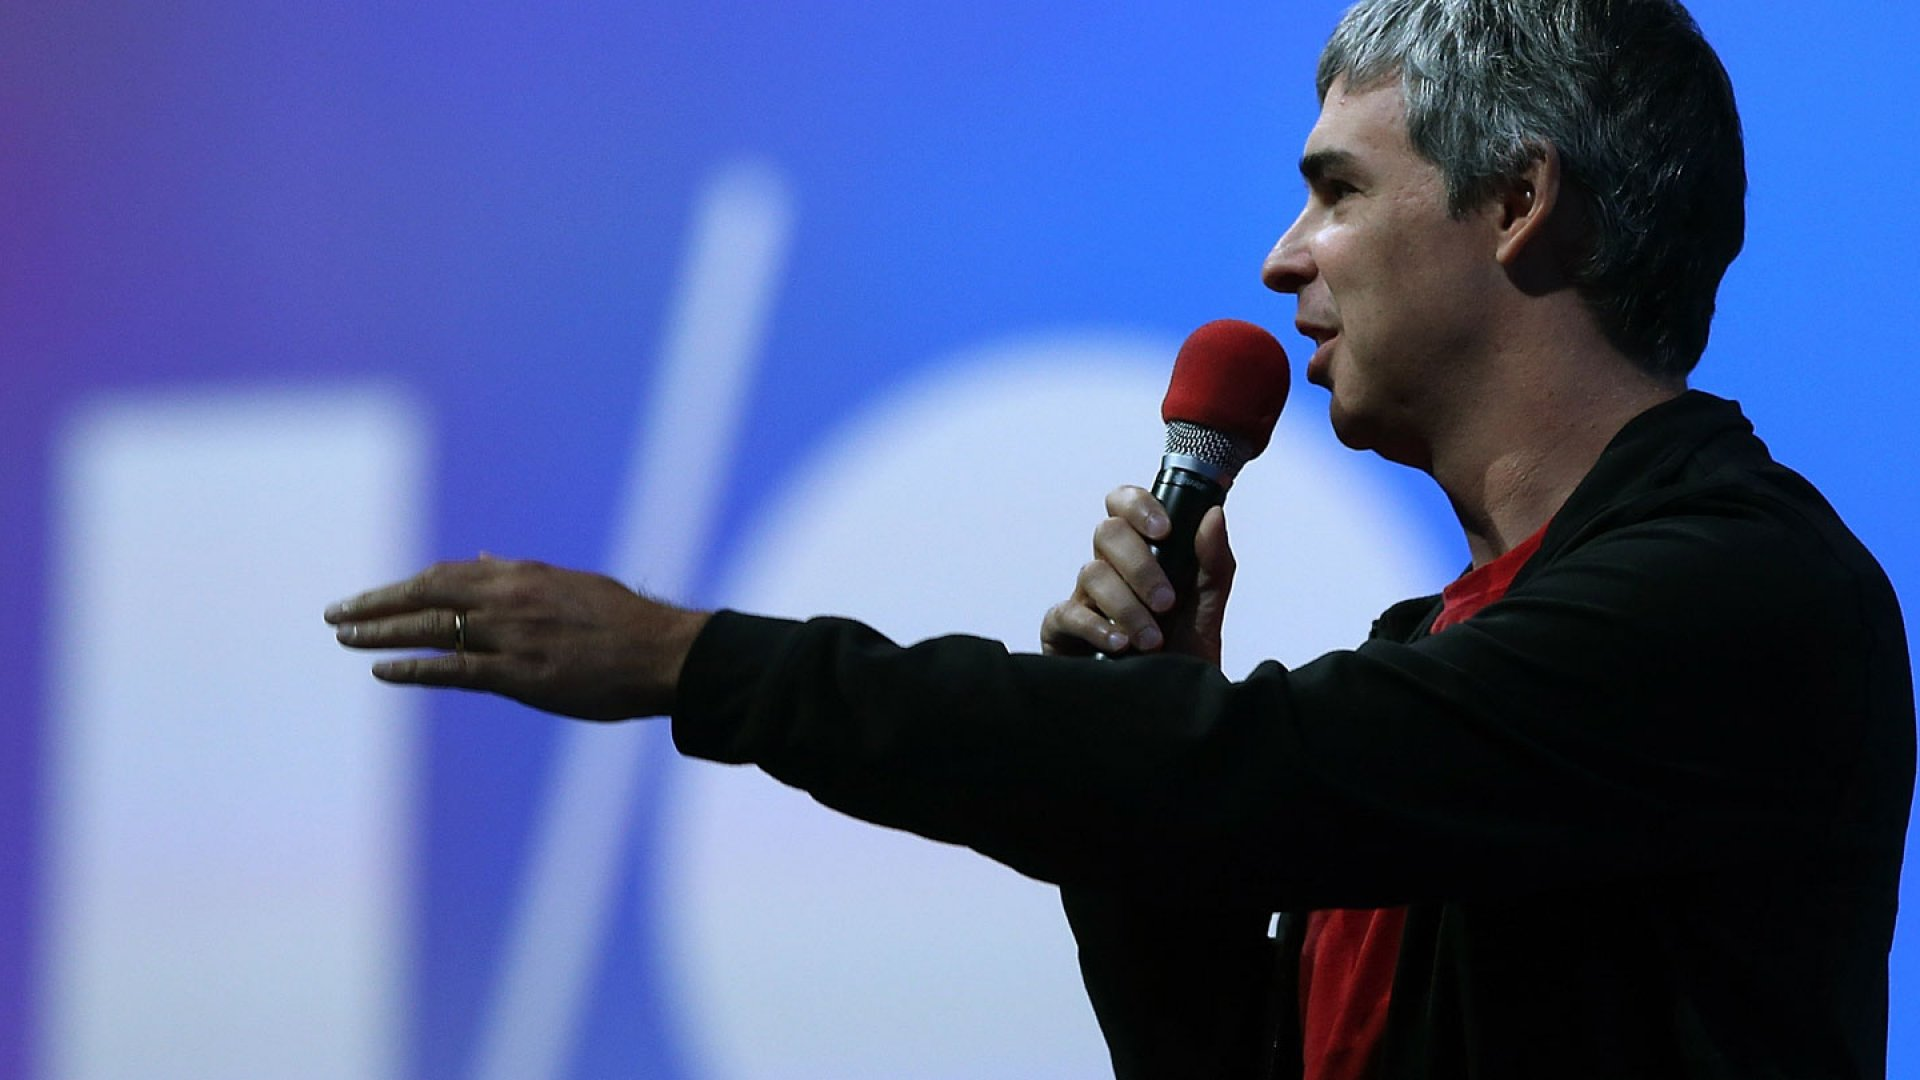 Google co-founder and CEO Larry Page speaks at Google I/O, an annual developer conference in San Francisco.